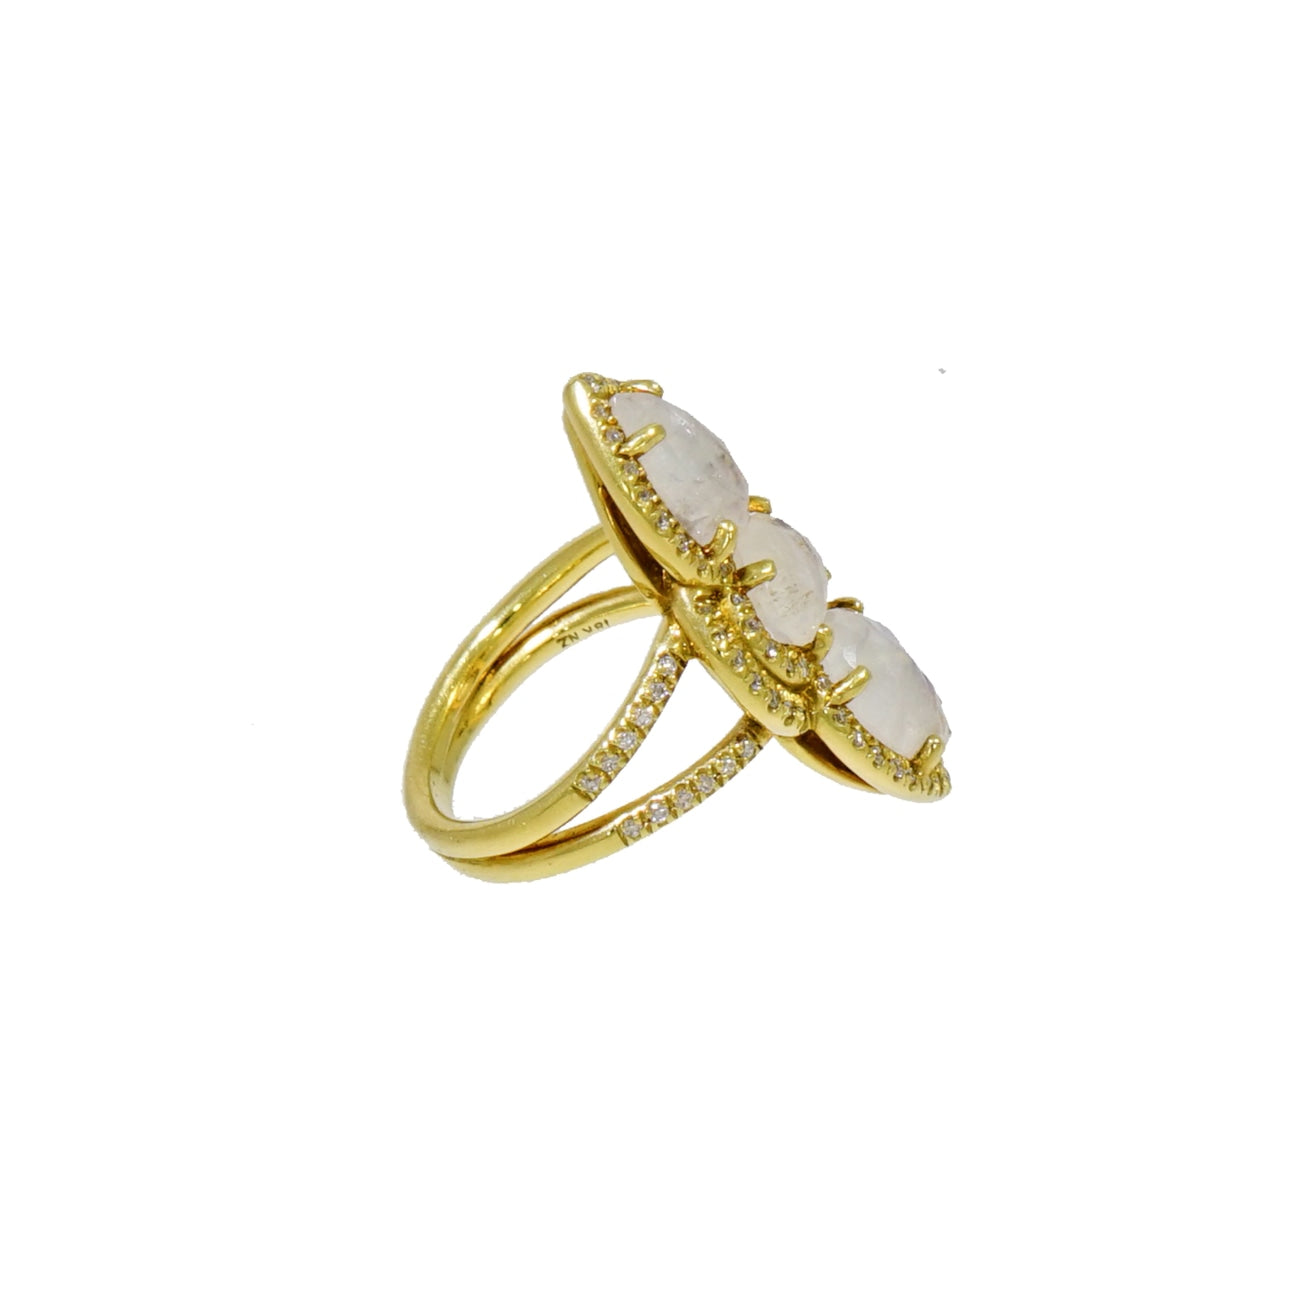 Lauren K Jewelry - Moonstone & Diamond Yellow Gold Ring | Manfredi Jewels